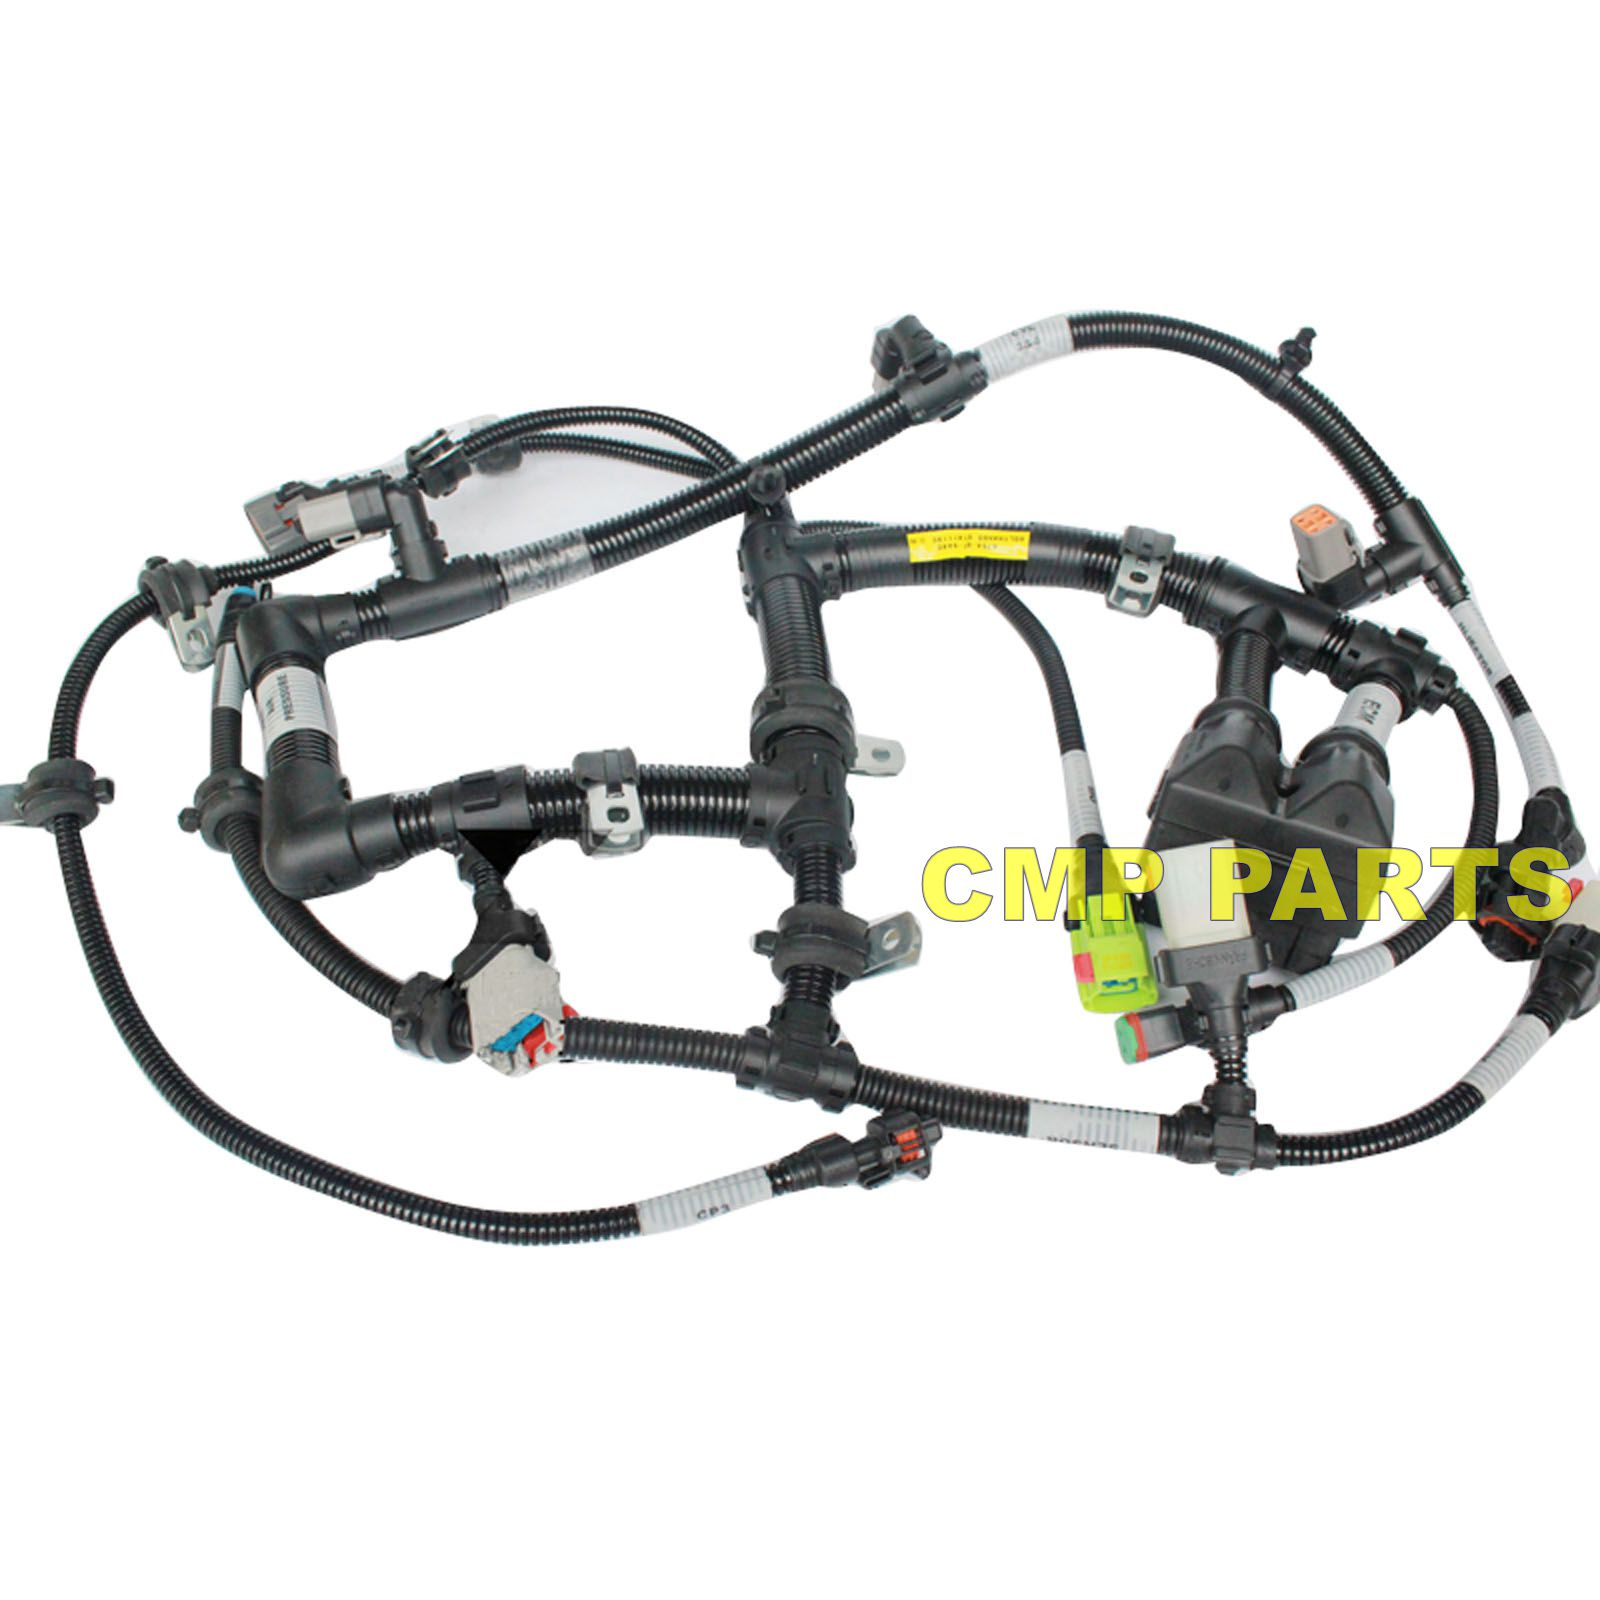 engine wiring harness 6754 81 9440 fits komatsu excavator pc200 8 you also like